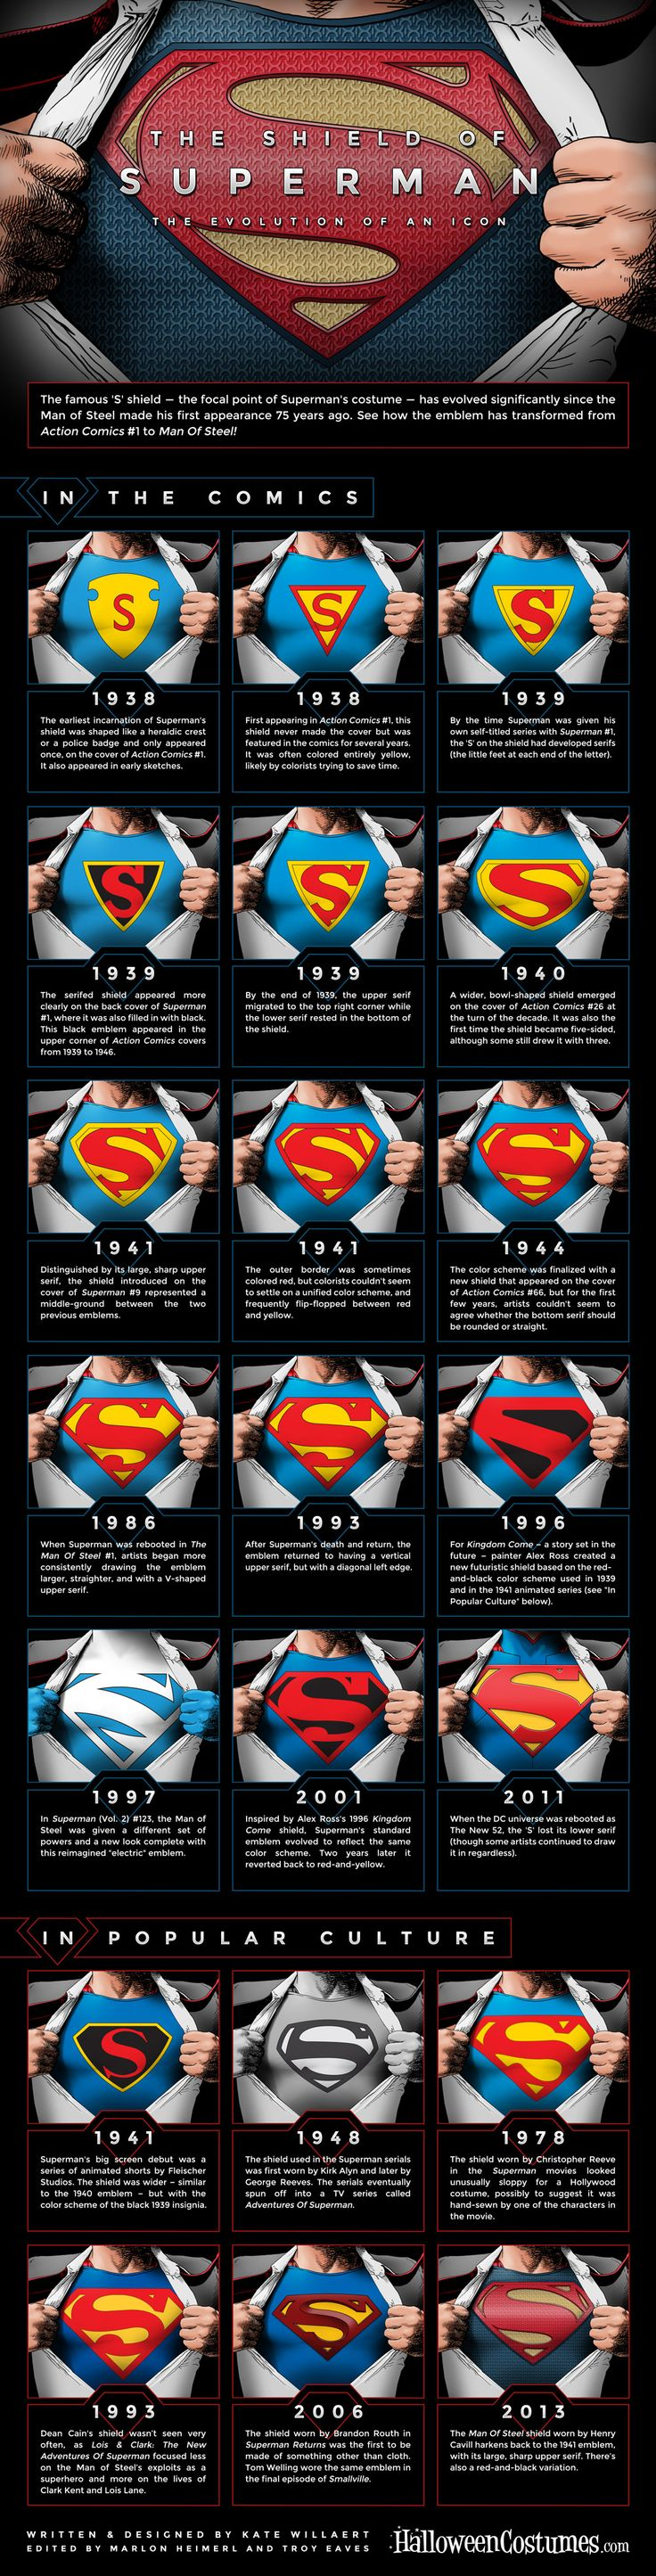 The evolution of Superman's shield